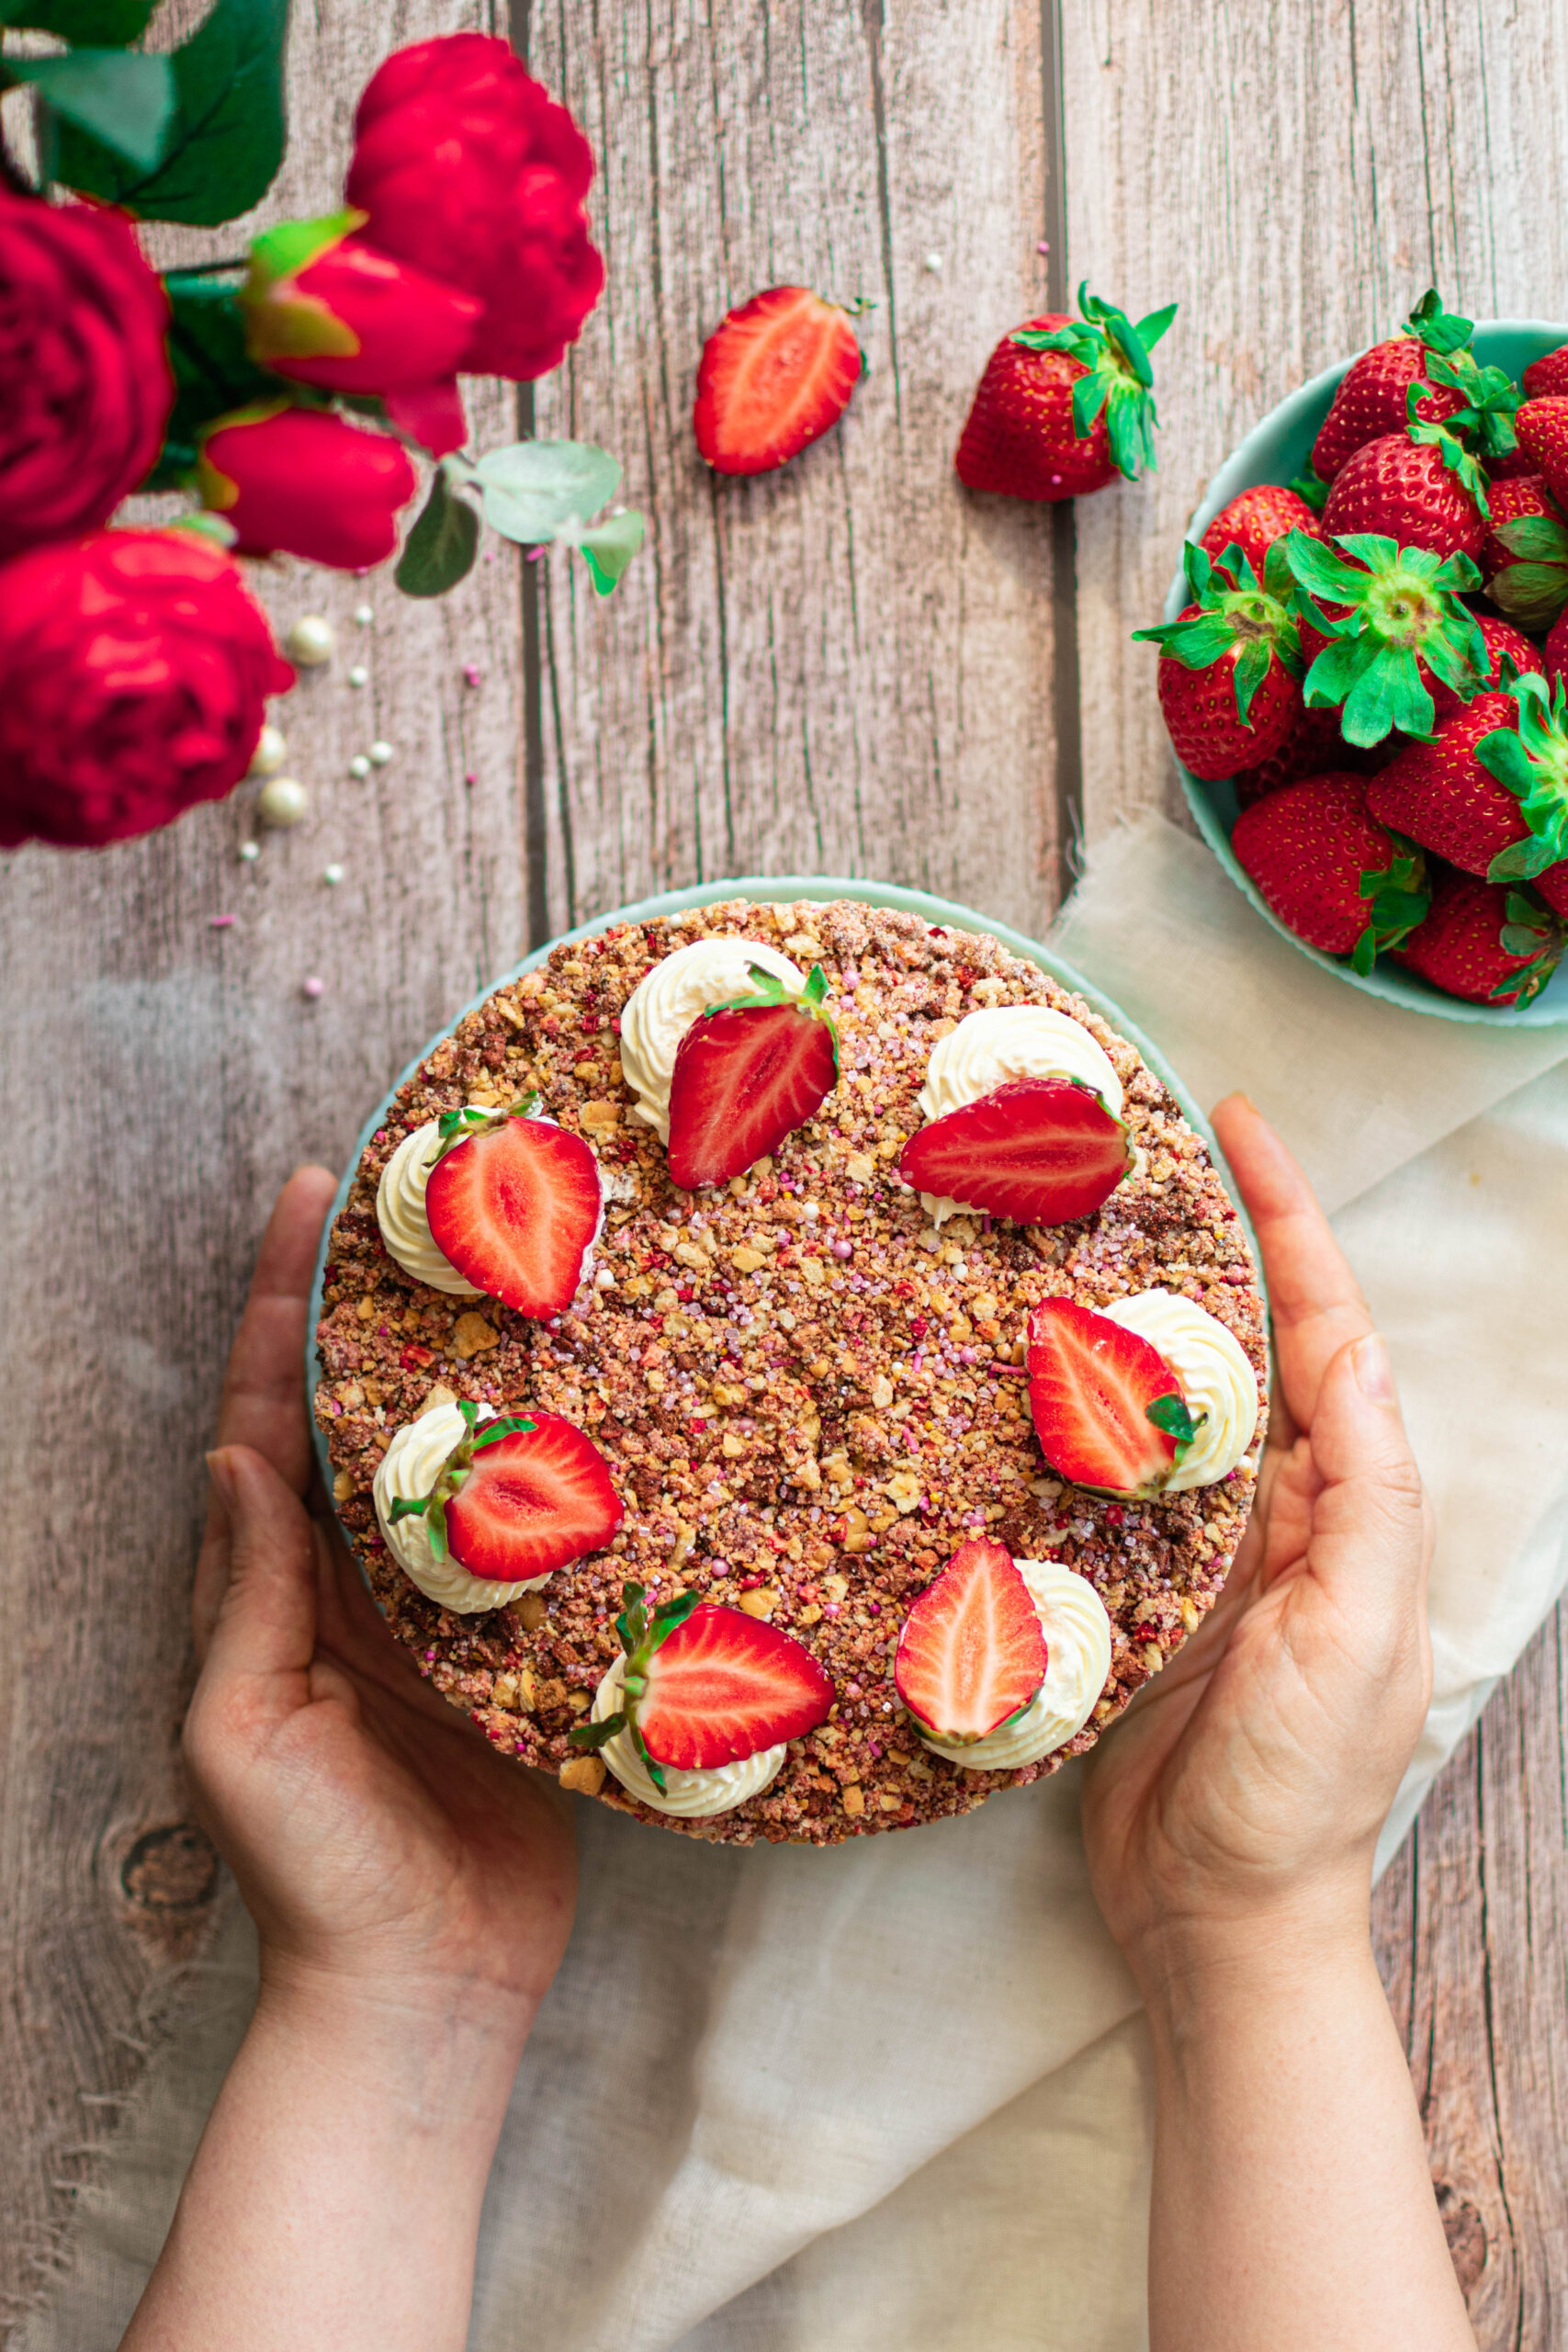 Flatlay image of hands holding strawberry crunch cheesecake